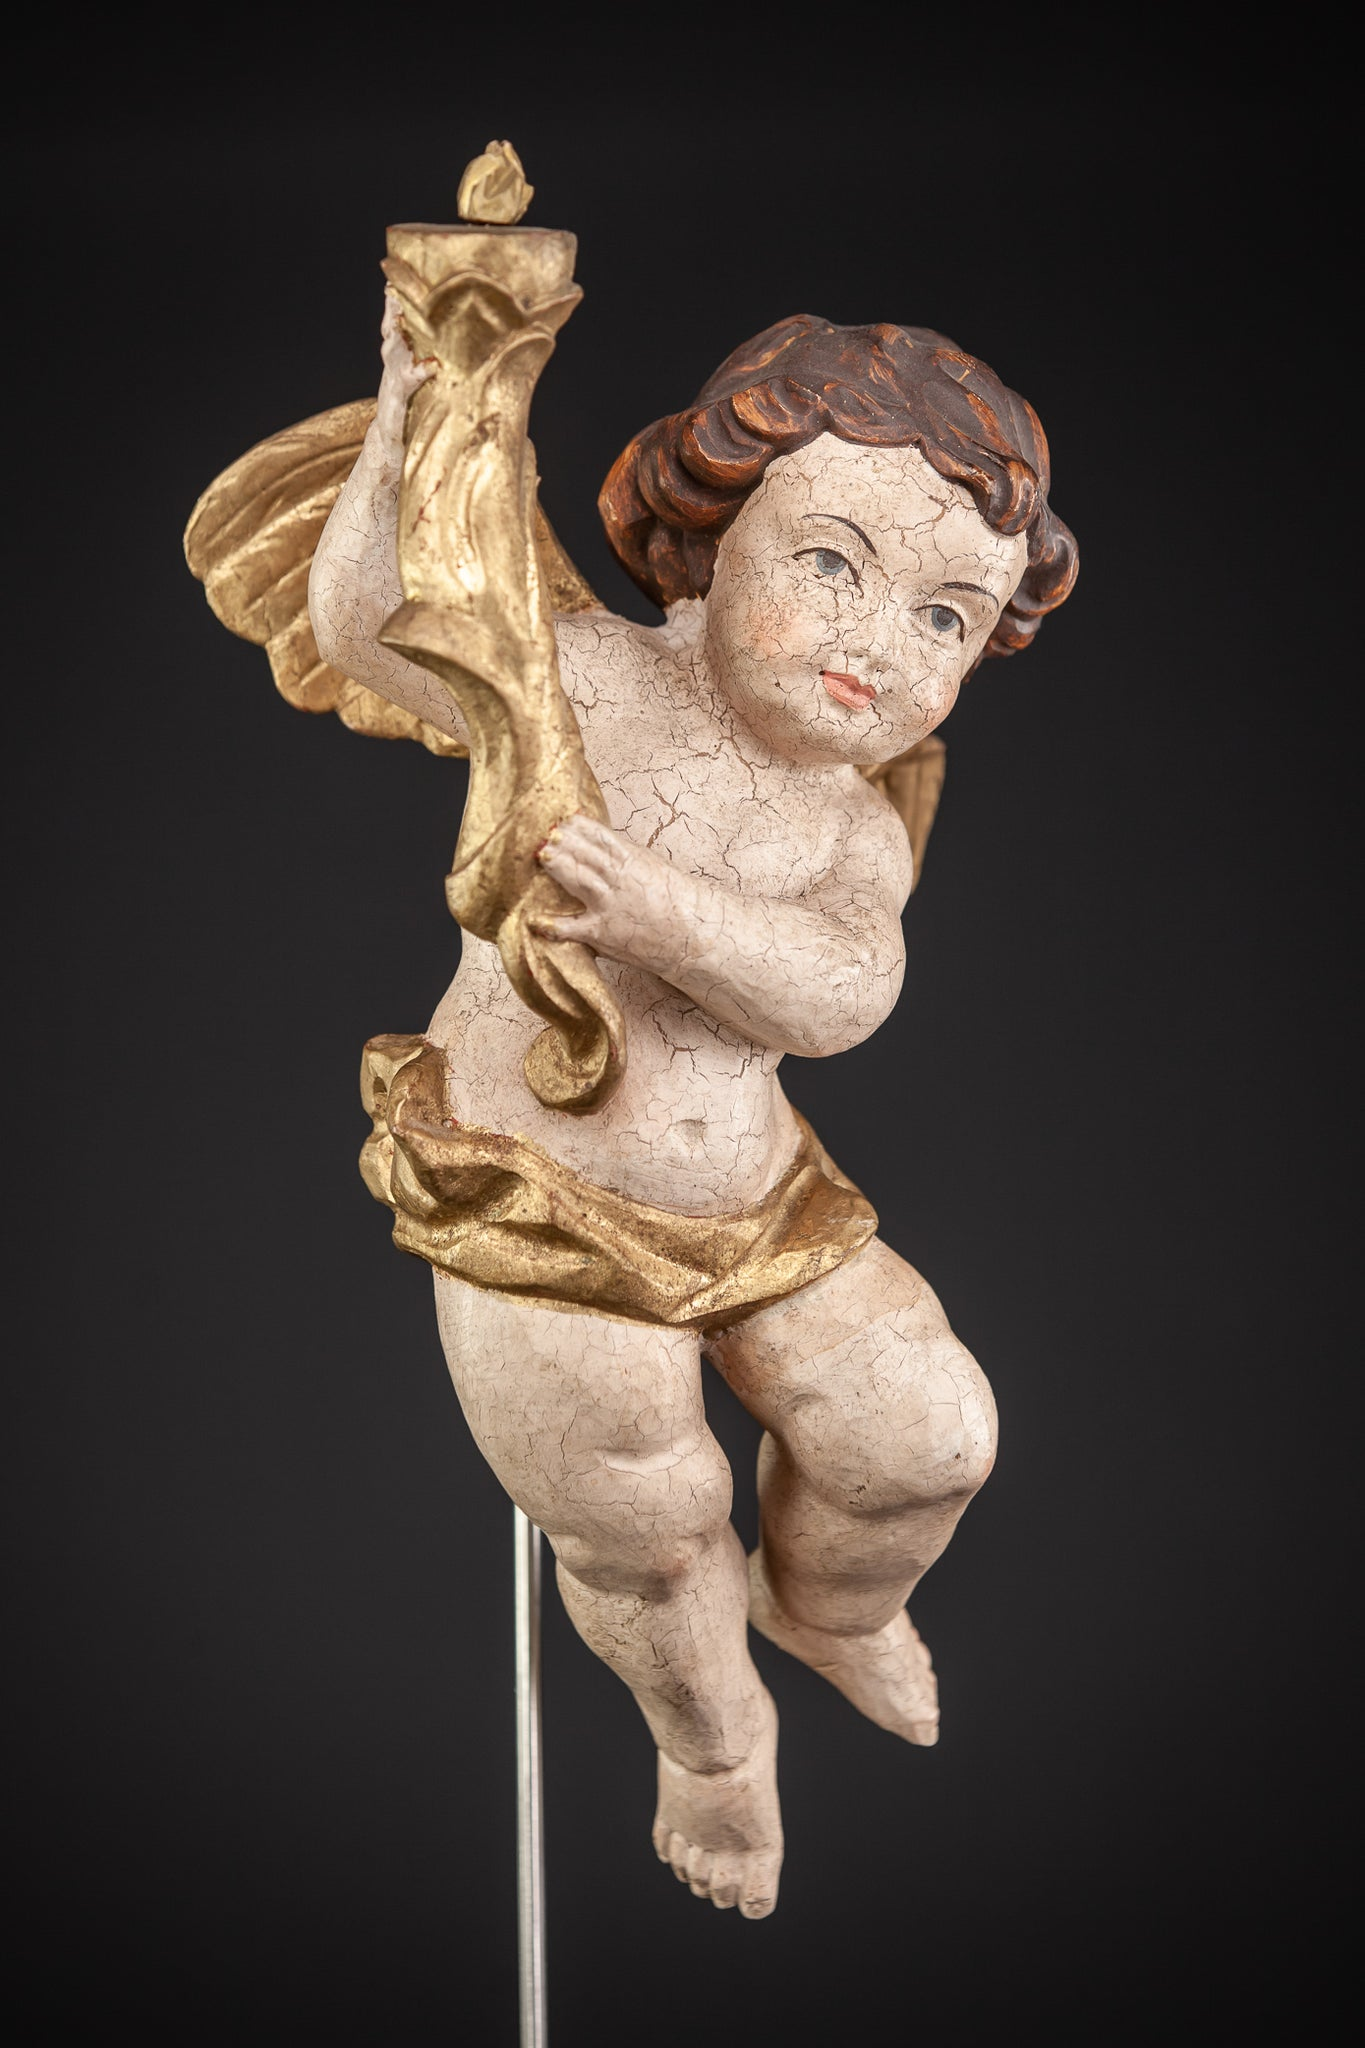 Angel Wood Carving Statue 13.8""